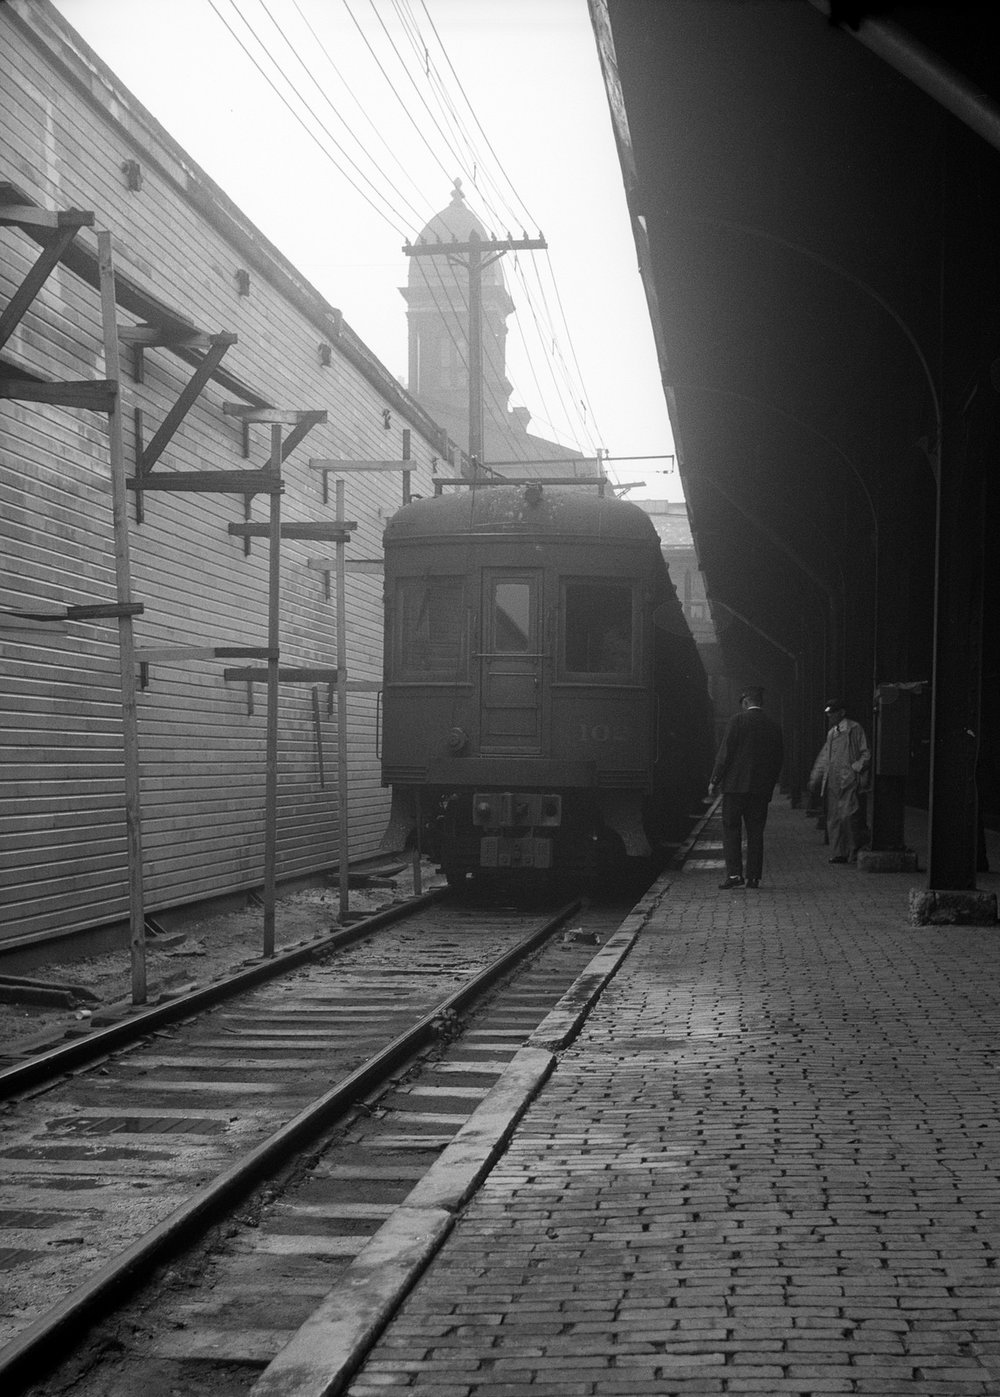 Baltimore & Annapolis Railroad Car #102 Camden Station. Baltimore, Maryland Date: 1940's. Source: Hugh Hayes Collection.